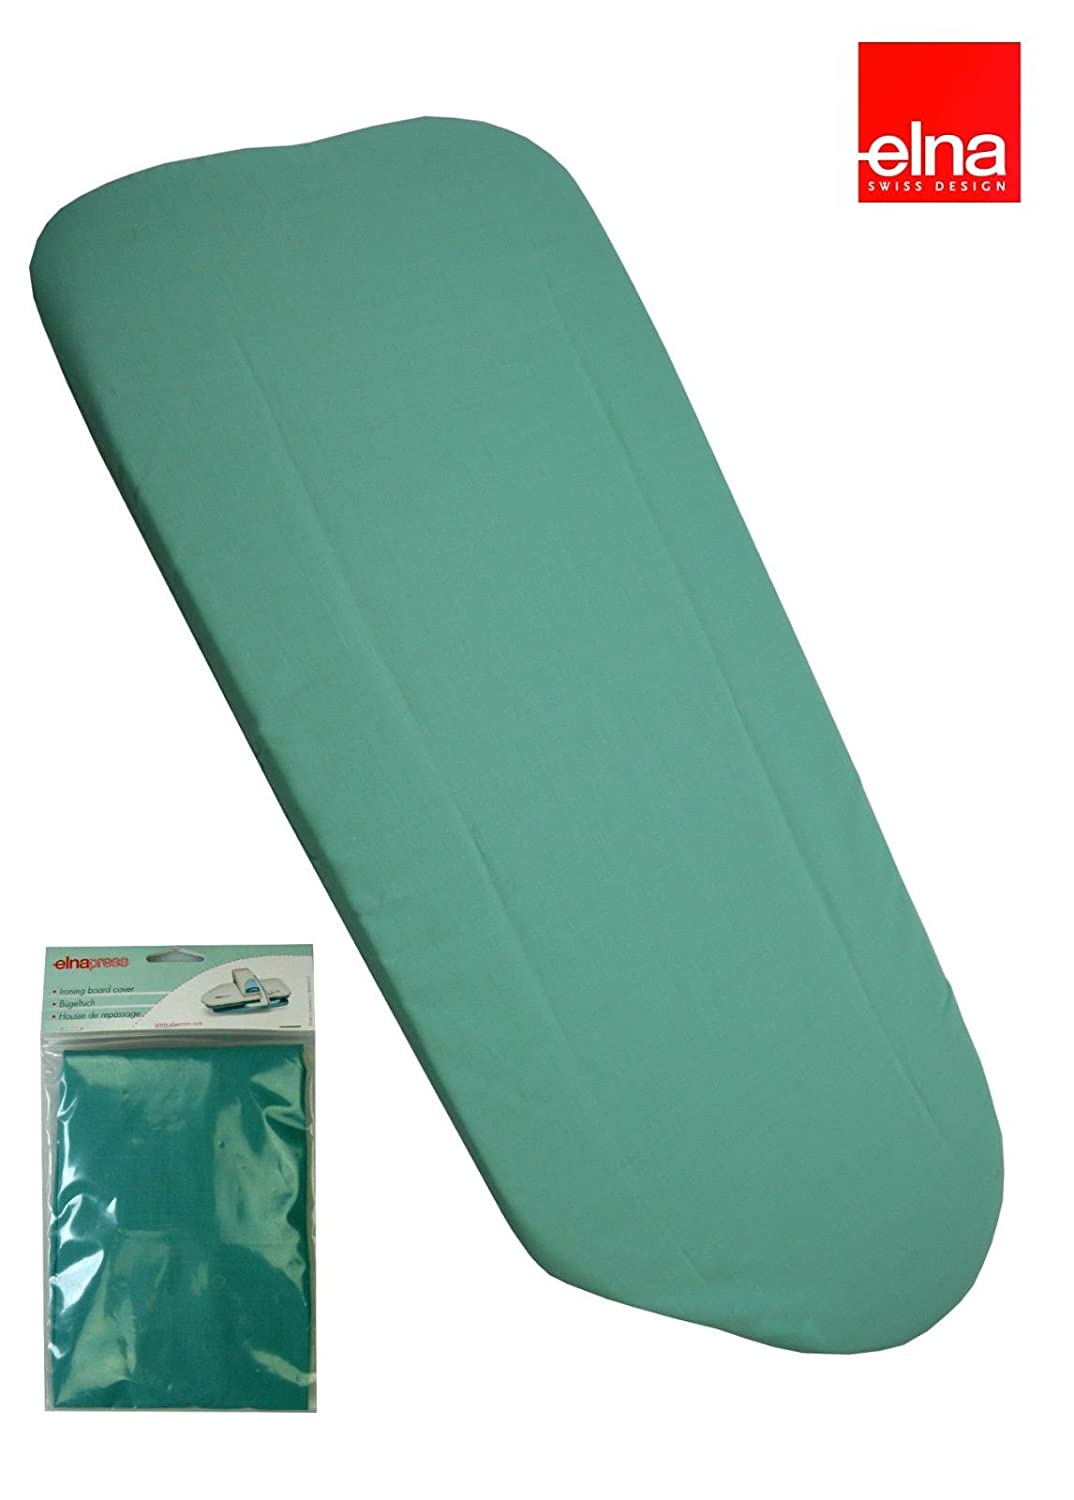 Elna Steam Ironing Press Cover GREEN - Coulings